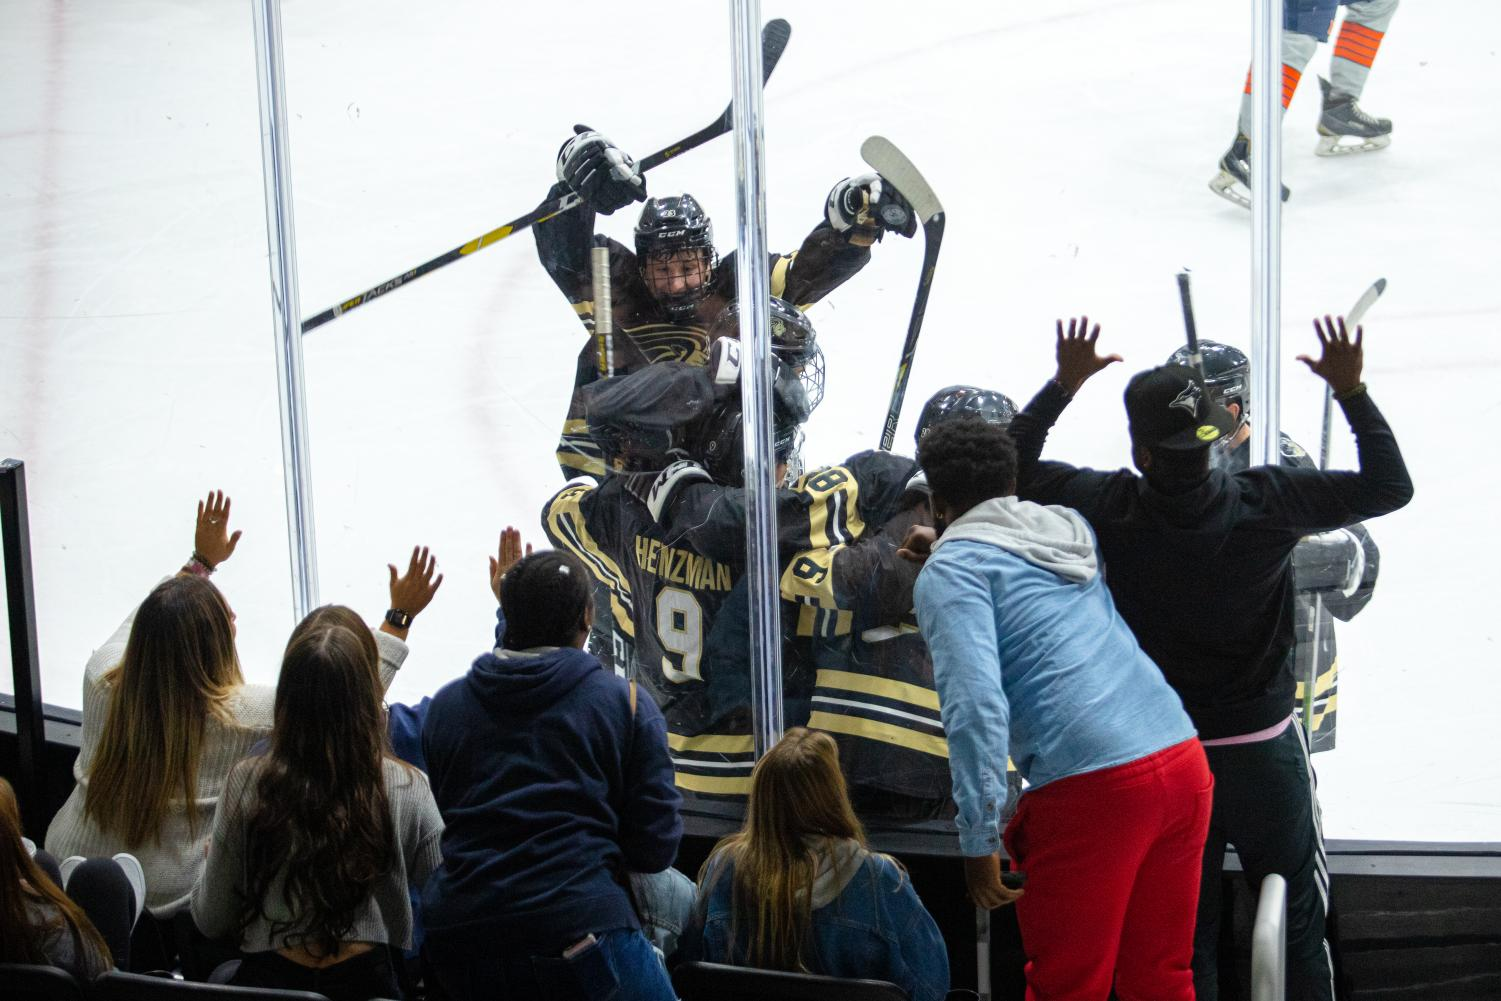 The Lindenwood men's ice hockey team celebrates after leading 3-0 in the second period, while Lindenwood women's ice hockey cheers along  the boards.  Photo by James Tananan Kamnuedkhun